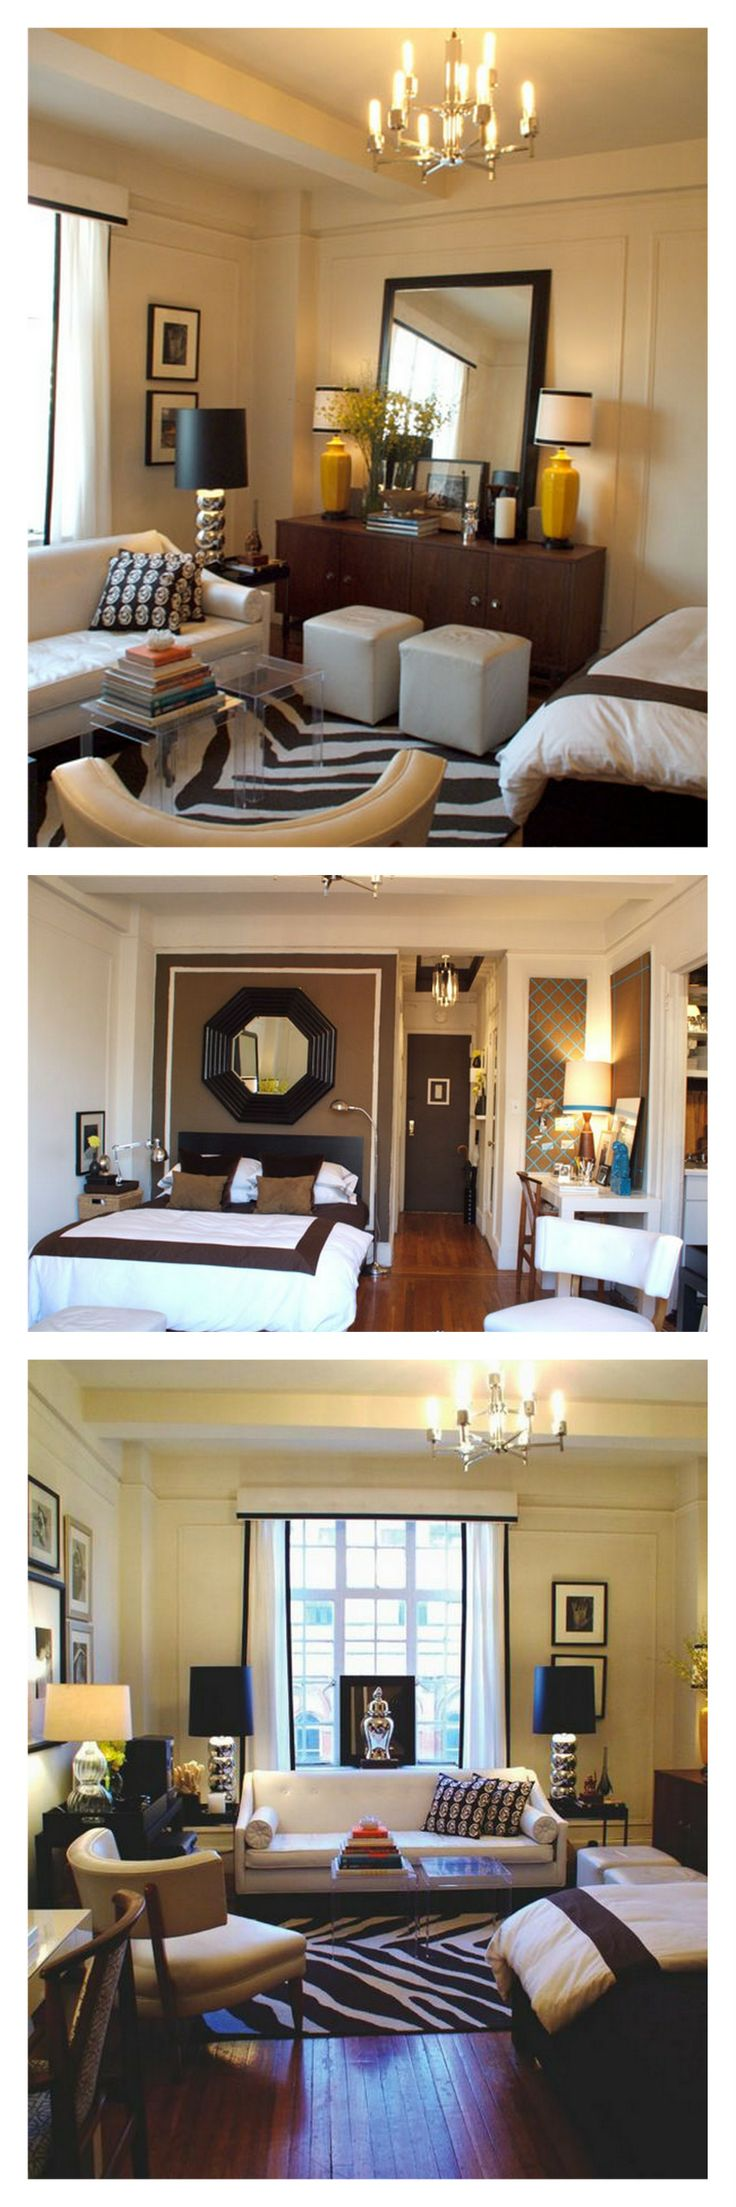 Find This Pin And More On Studio Apartment Ideas By Rypy86.